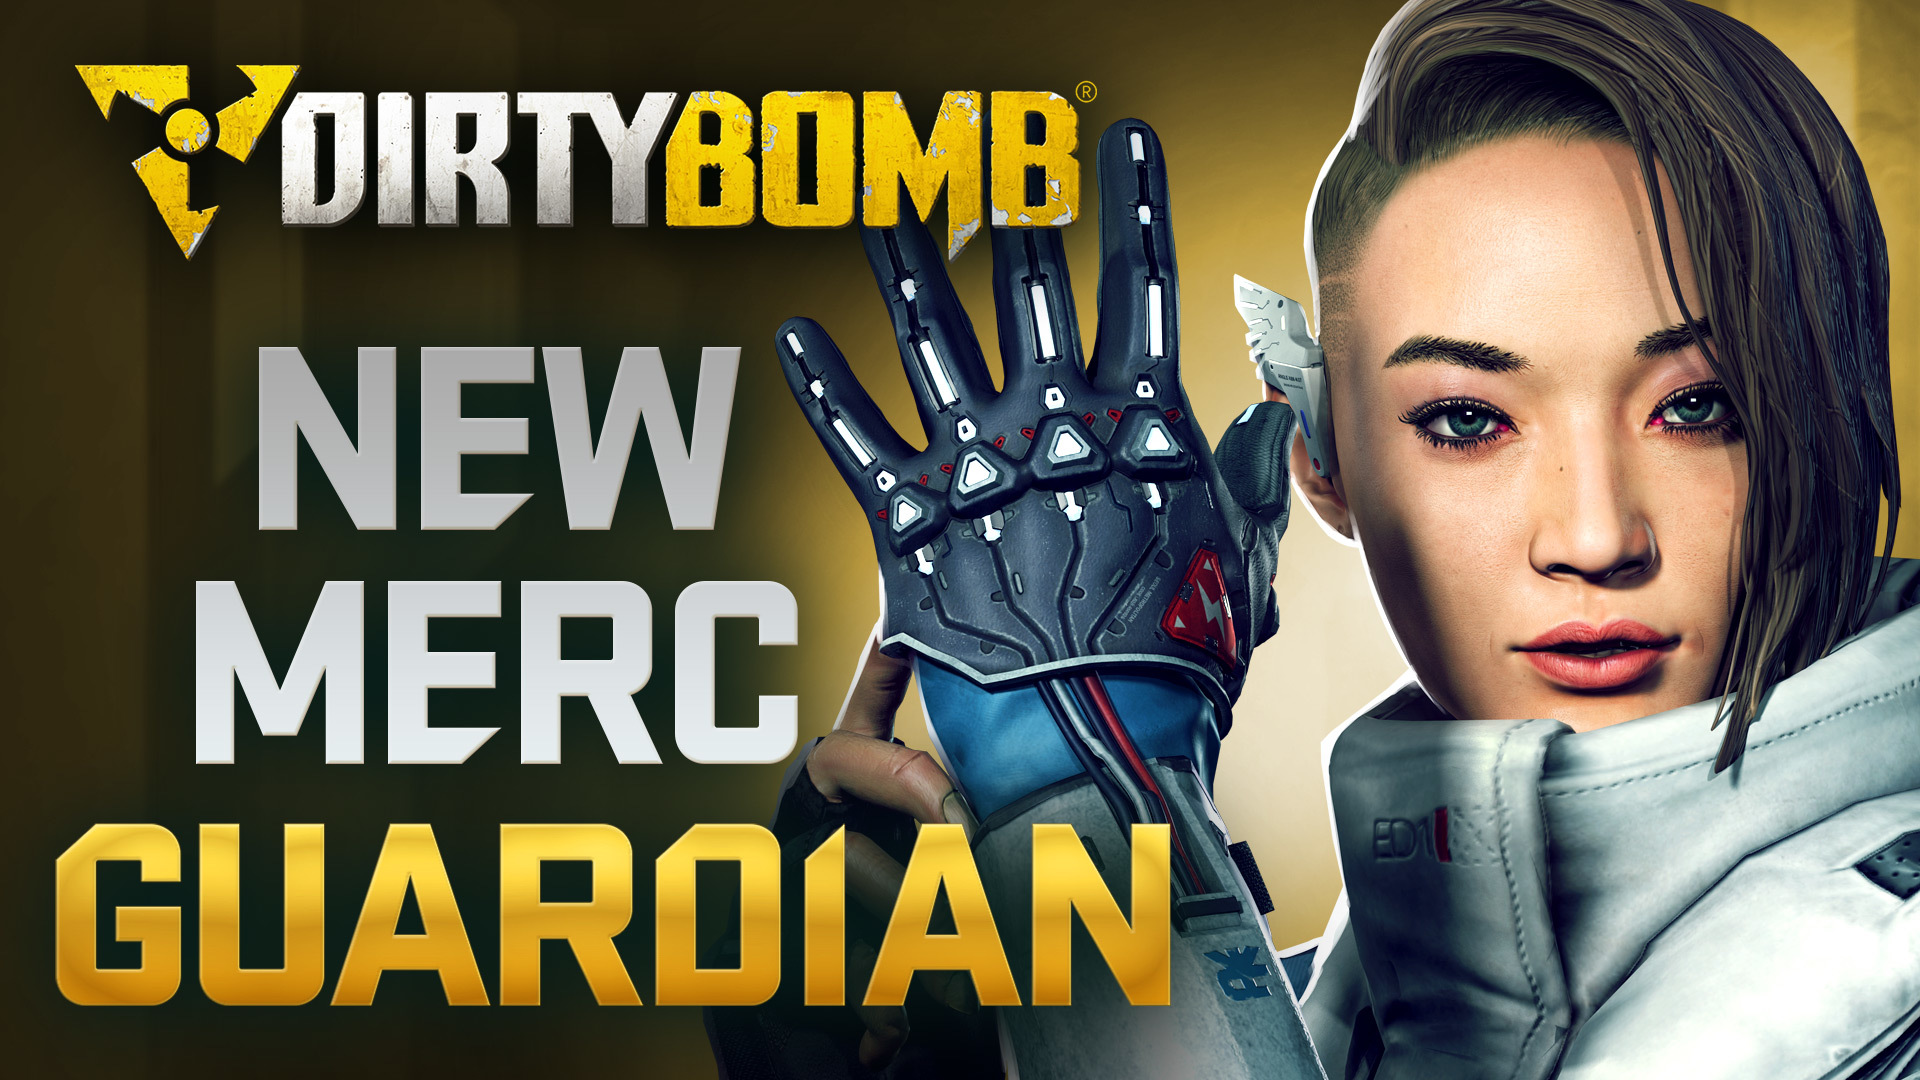 casual matchmaking dirty bomb reddit dating over 30